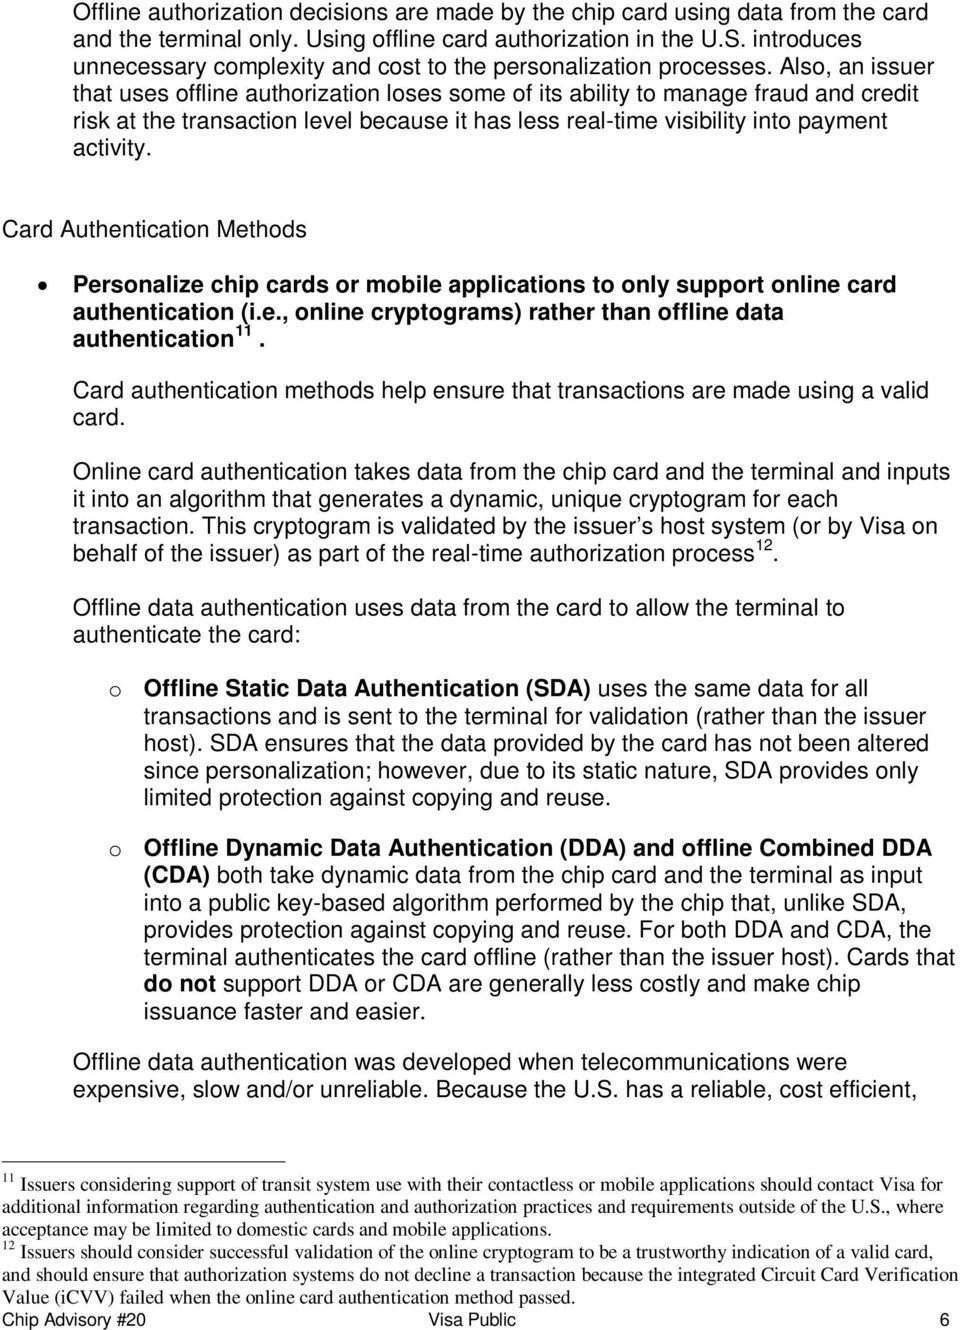 Also, an issuer that uses offline authorization loses some of its ability to manage fraud and credit risk at the transaction level because it has less real-time visibility into payment activity.